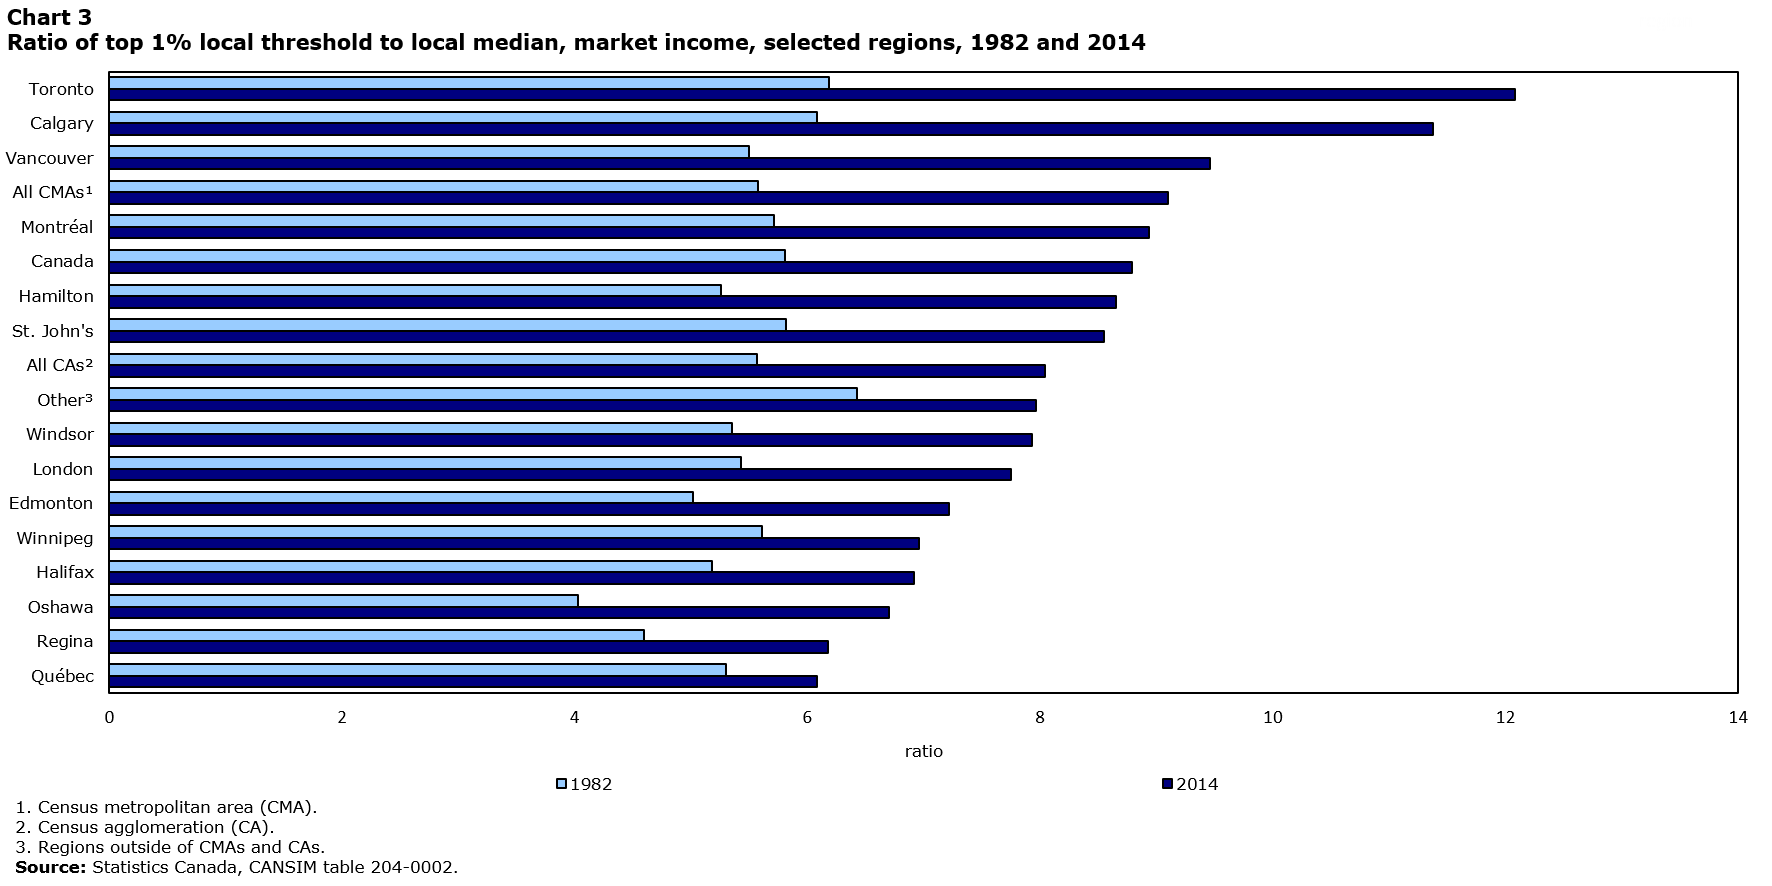 Chart 3: Ratio of top 1% local threshold to local median, market income, selected regions, 1982 and 2014